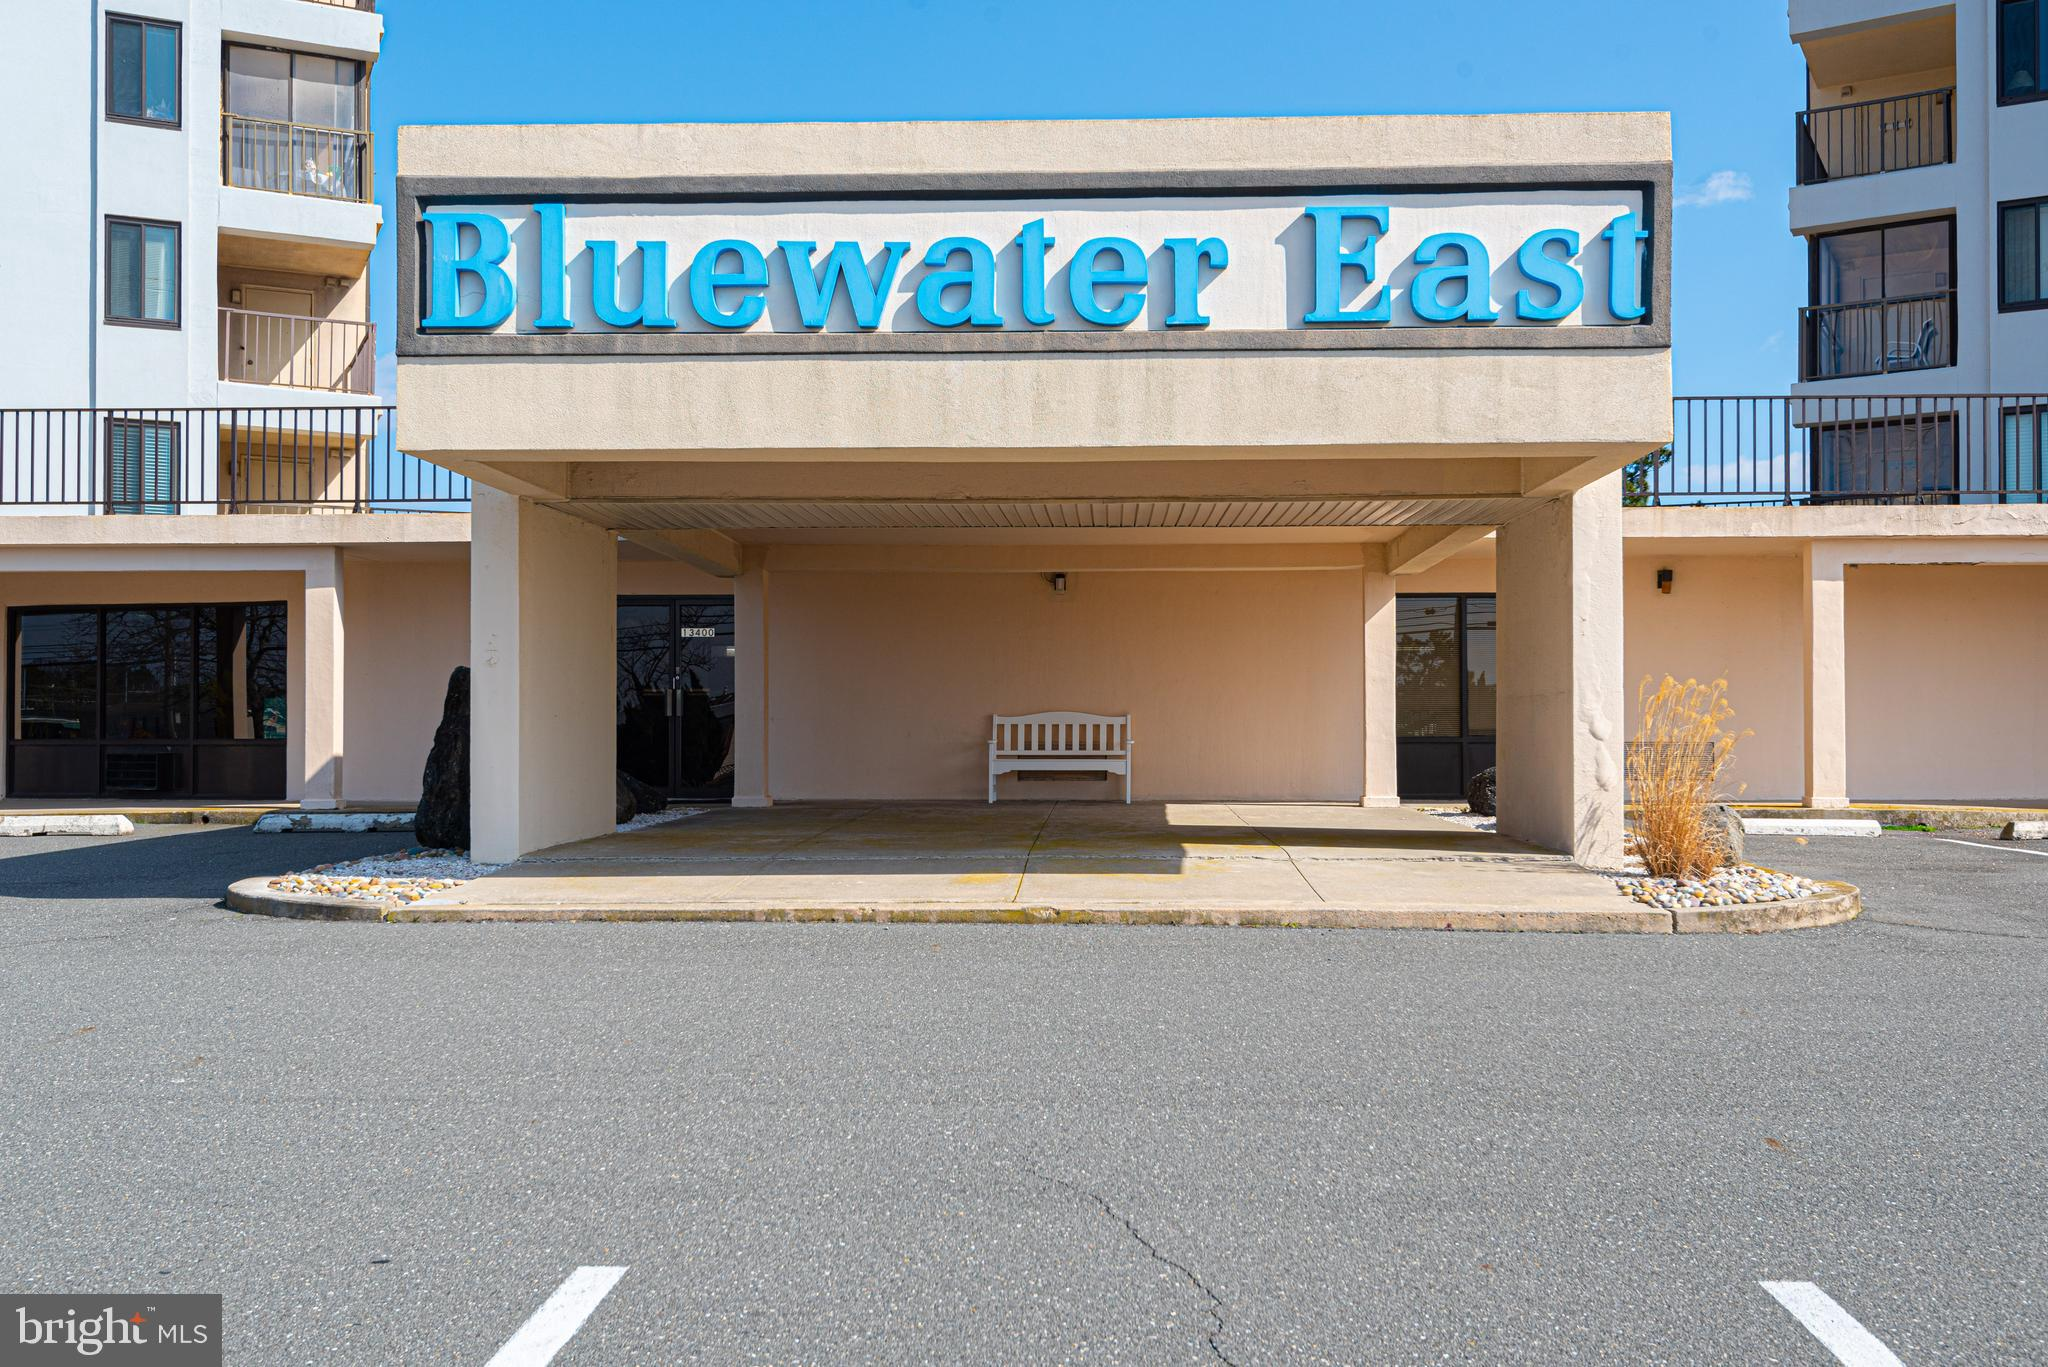 Just a short walk to the beach.  Bluewater East is located on the ocean block in North Ocean City on 134th St.  This affordable one bedroom one bathroom condo is a perfect getaway at the beach.  This is a Southeast facing unit overlooking the pool.  Kitchen and bathroom were updated in the past 5 years.  This condo is in a great location in N. Ocean City making it perfect for a relaxing vacation home or rental.